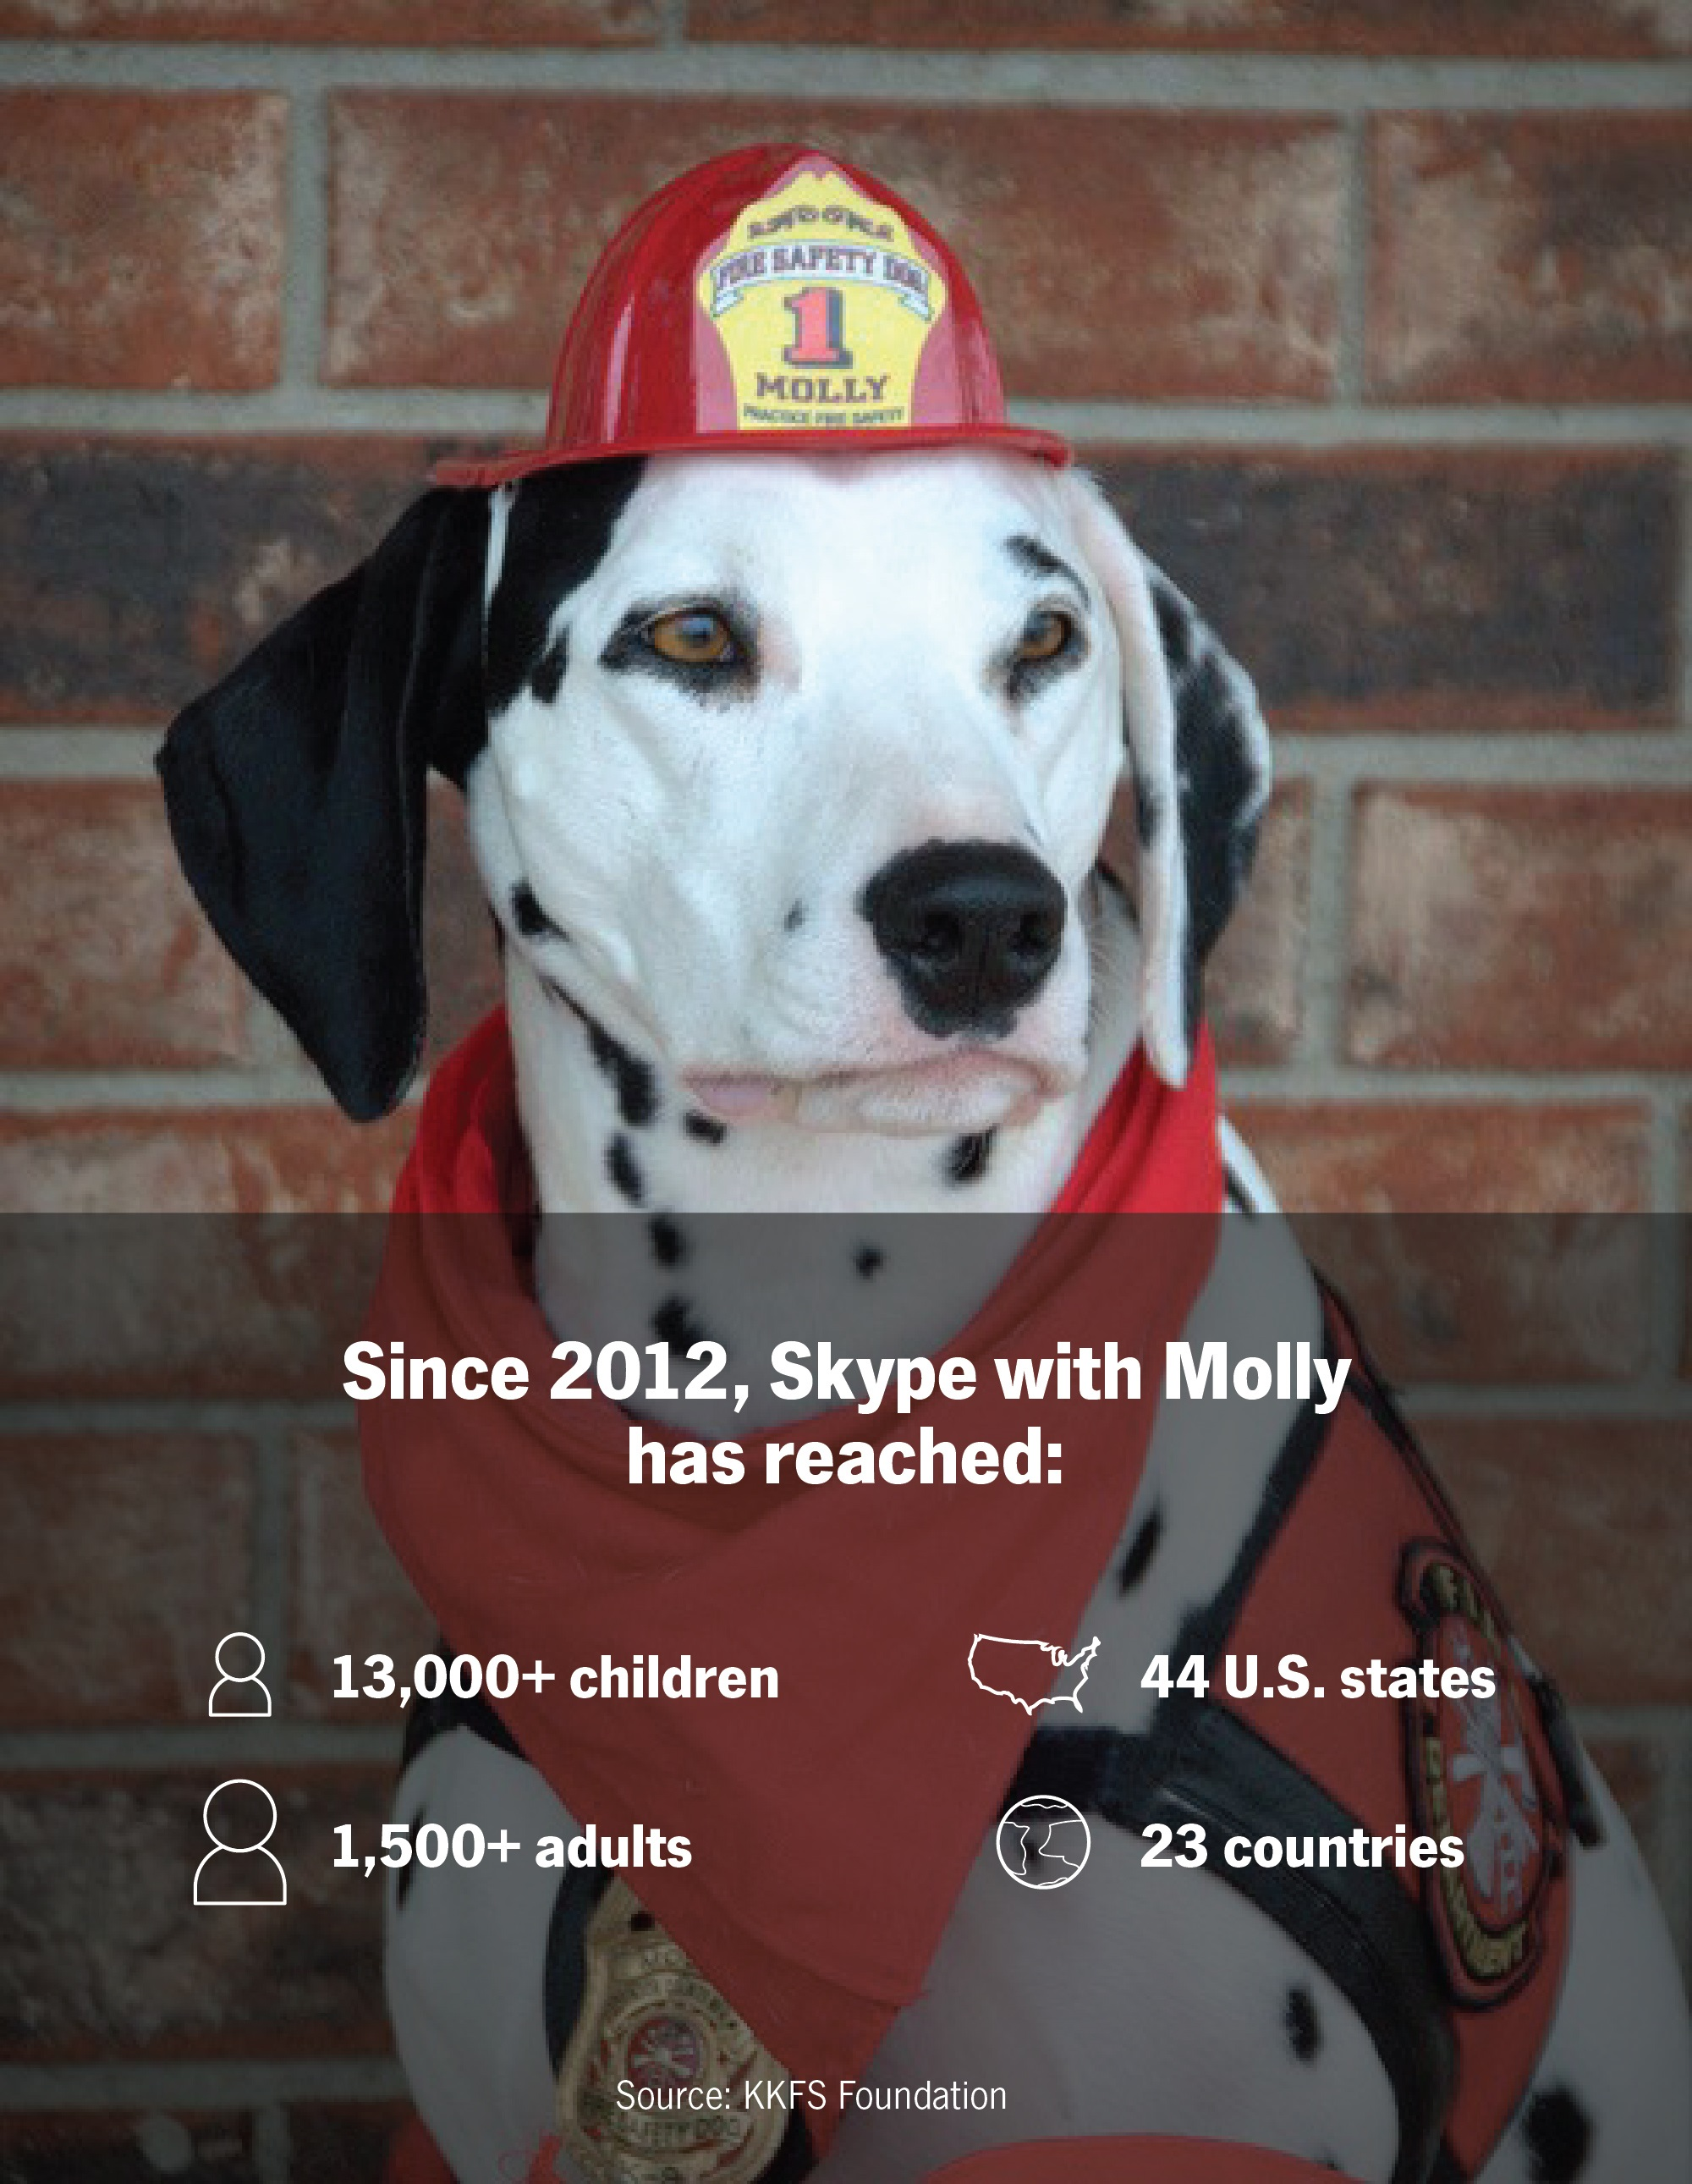 The Skype with Molly Program has reached more than 13,000 children and more than 1,500 adults.